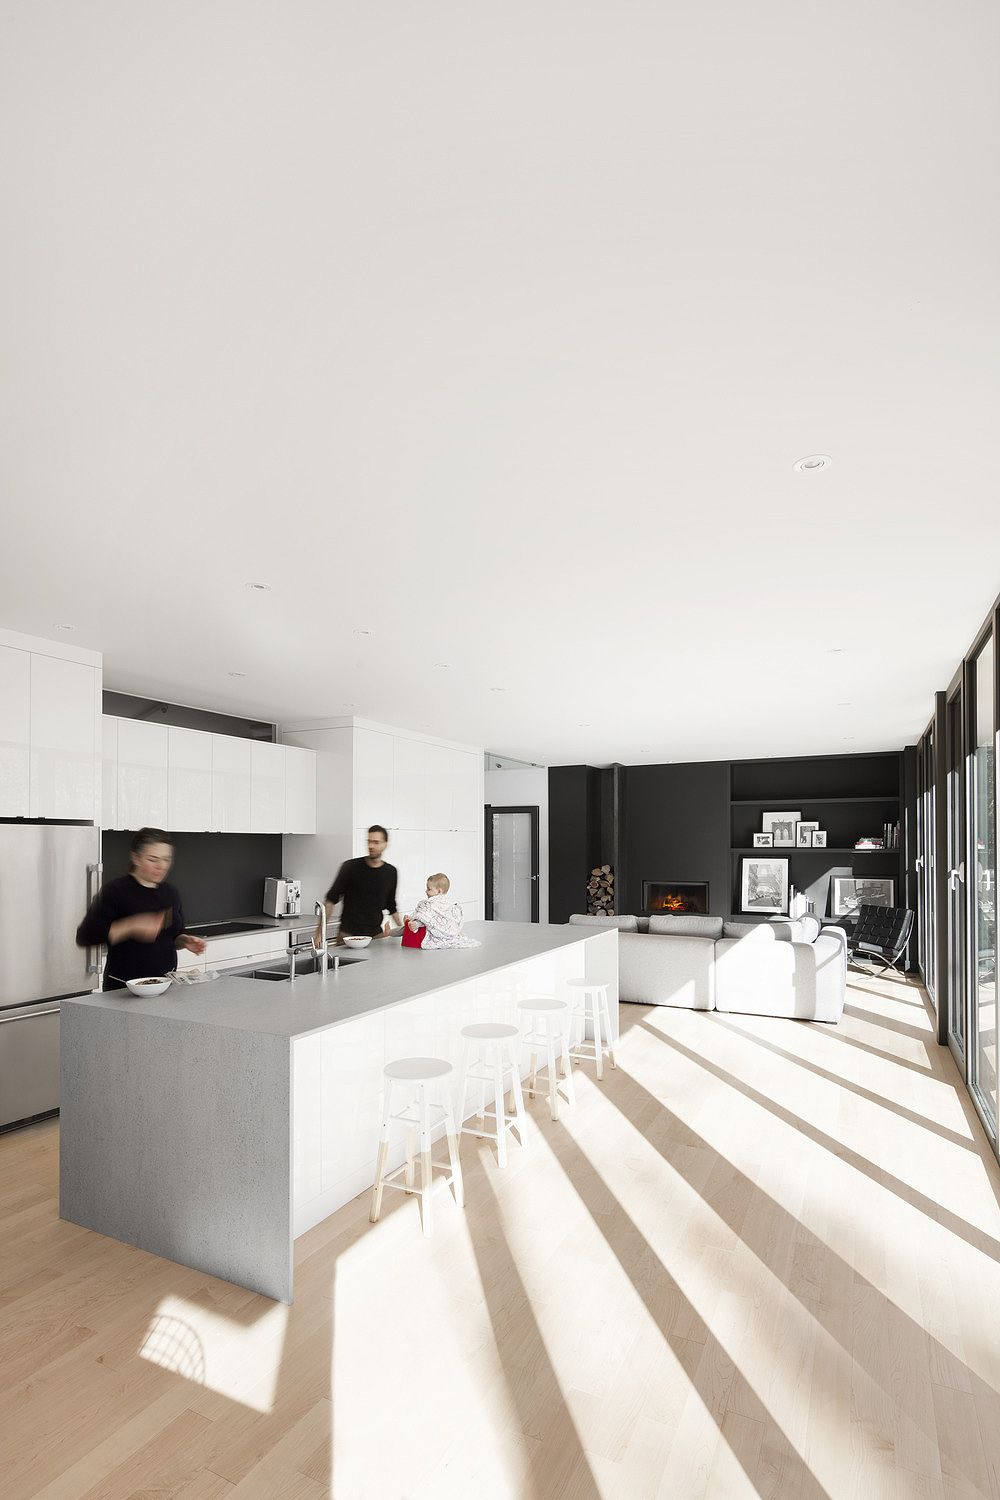 lk-house-bourgeois-lechasseur-architects (5) | INT | kitchen ...